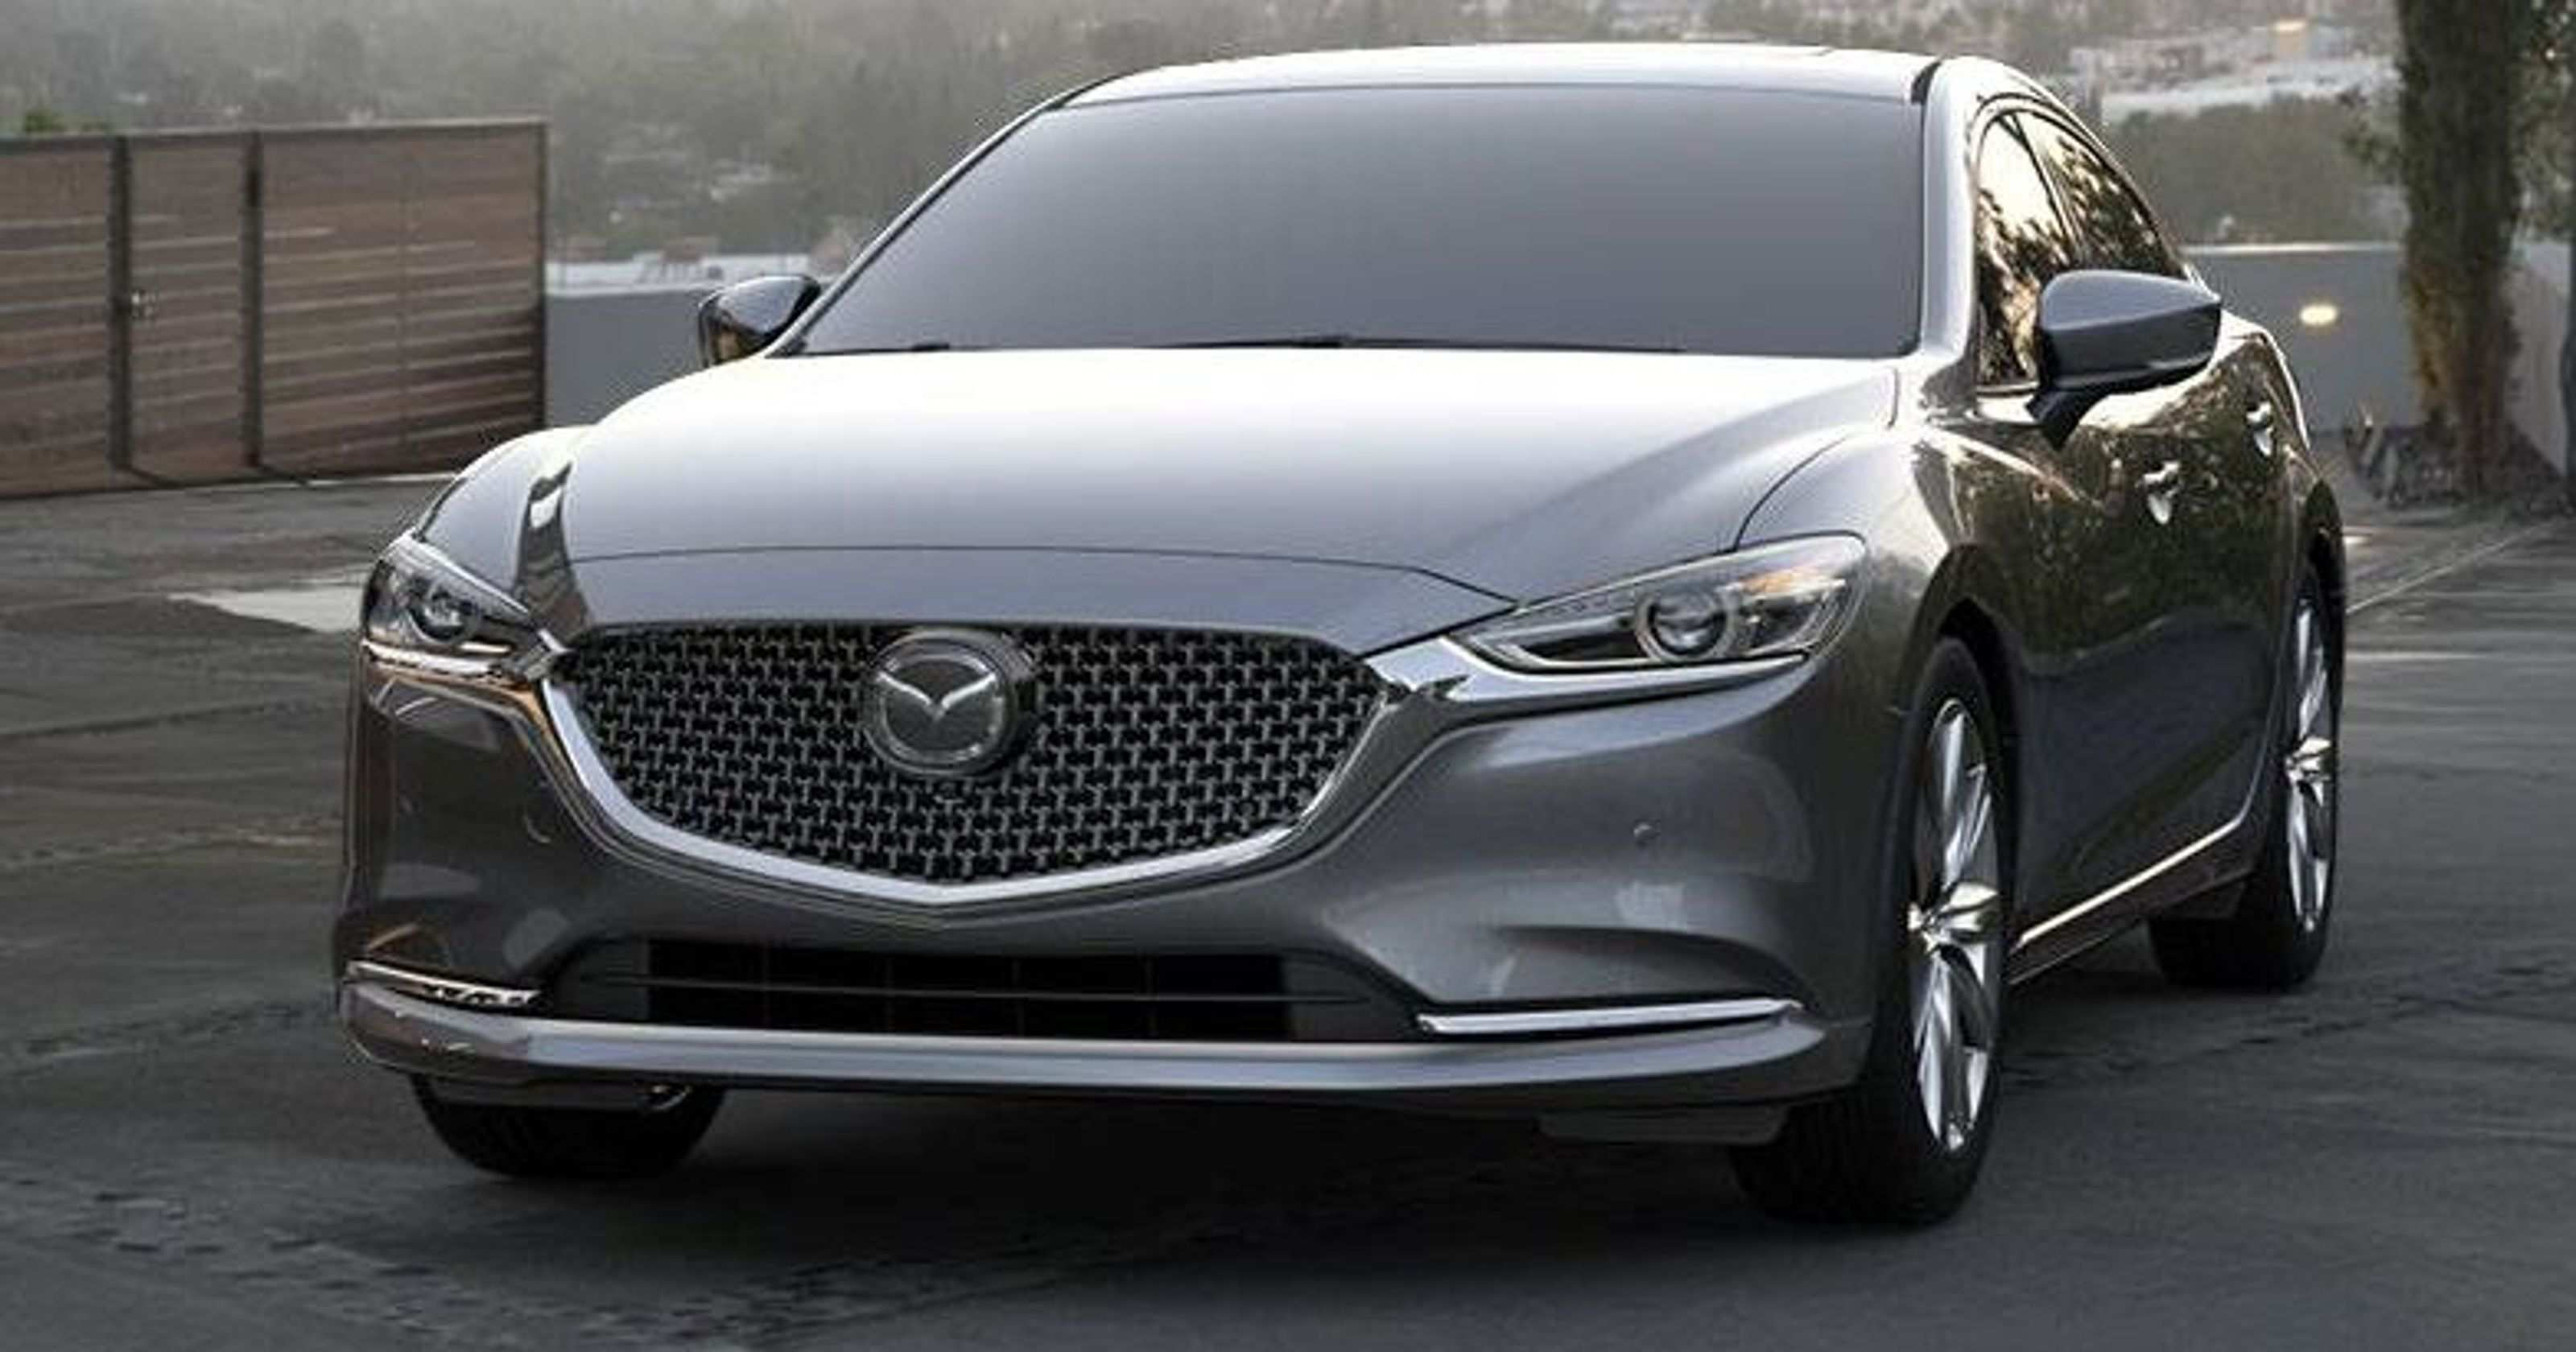 70 The Mazda Zoom Zoom 2020 Review And Release Date